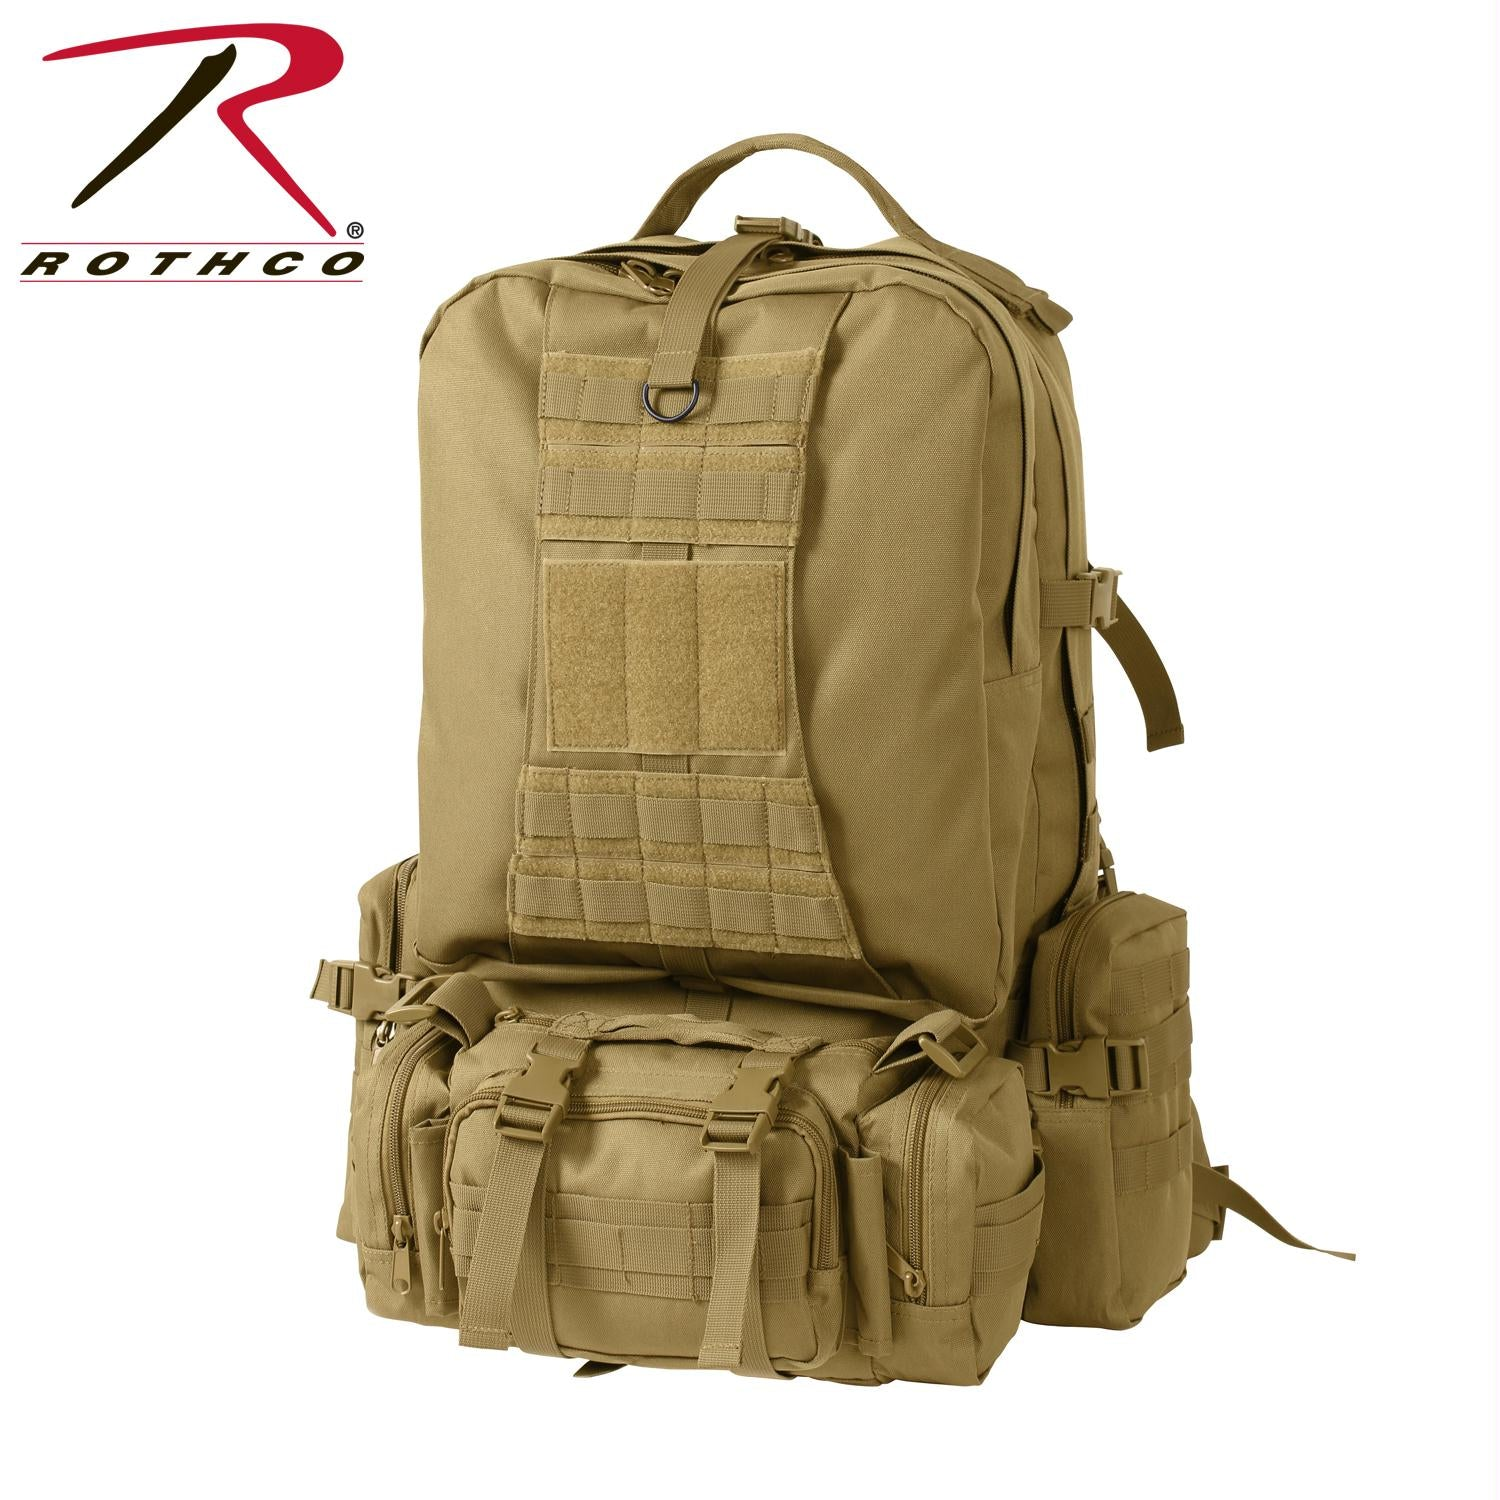 Rothco Global Assault Pack - Coyote Brown